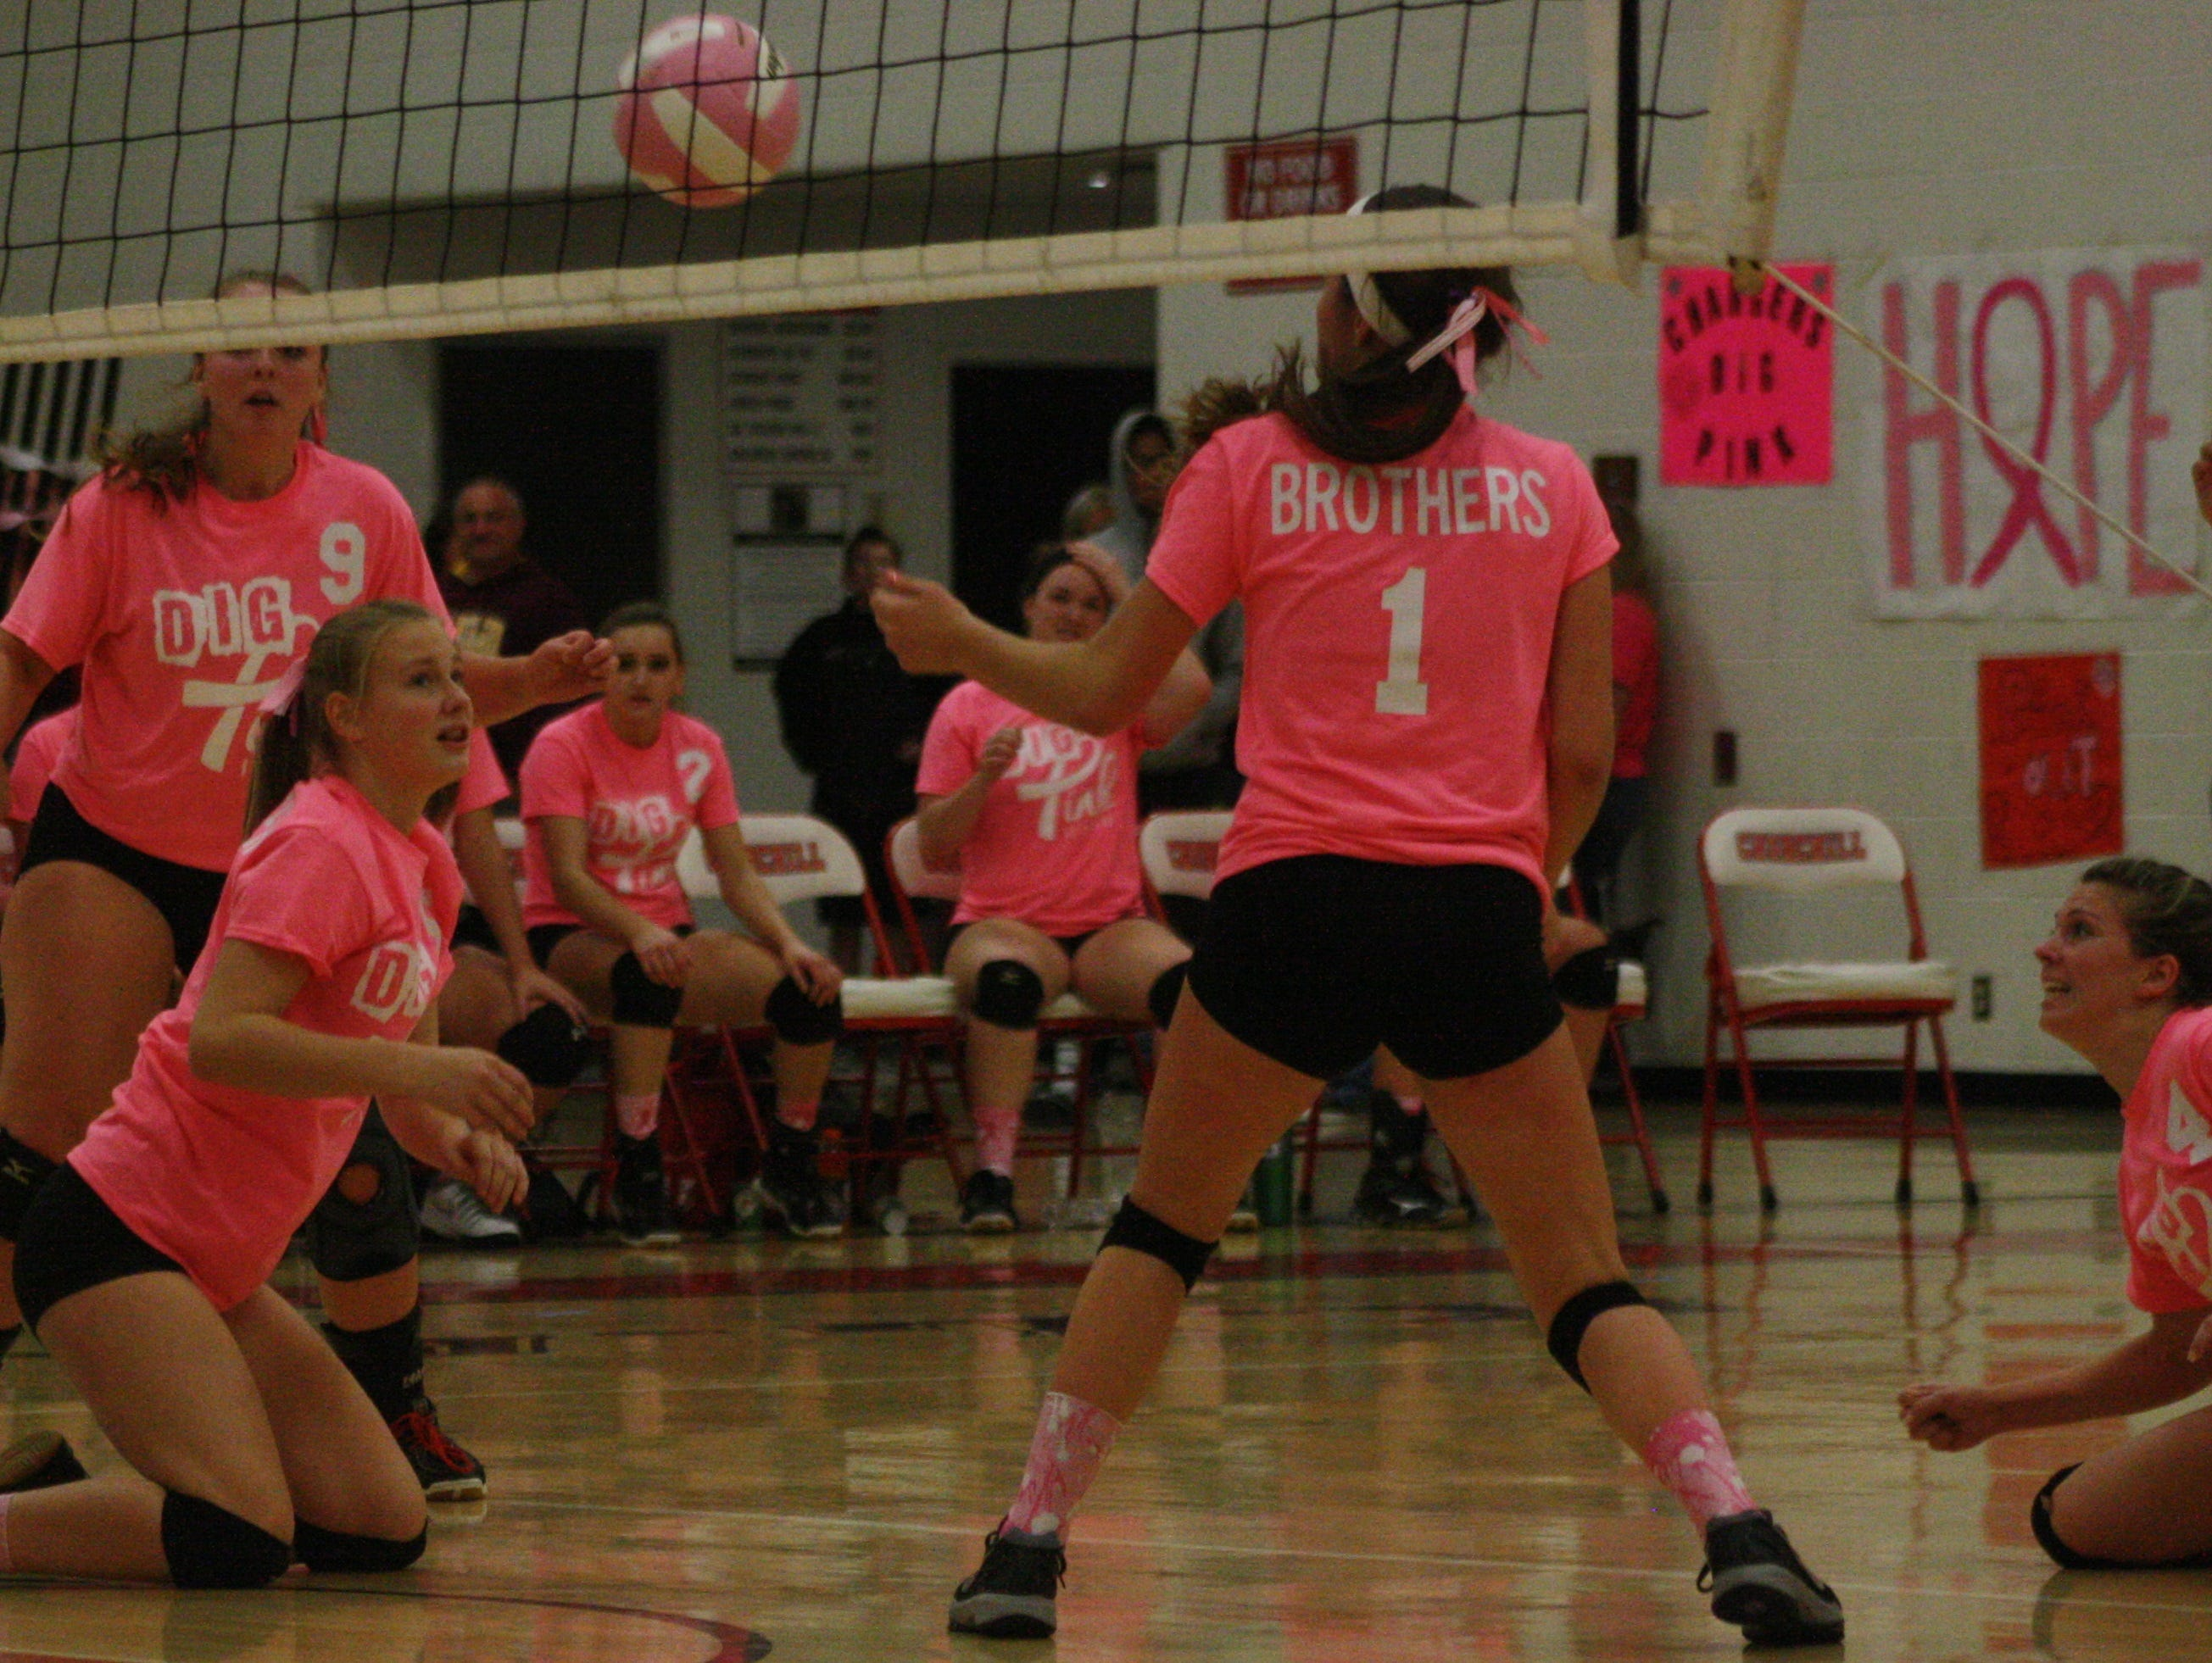 Members of Franklin's volleyball team hit the floor to keep this point alive Tuesday night.